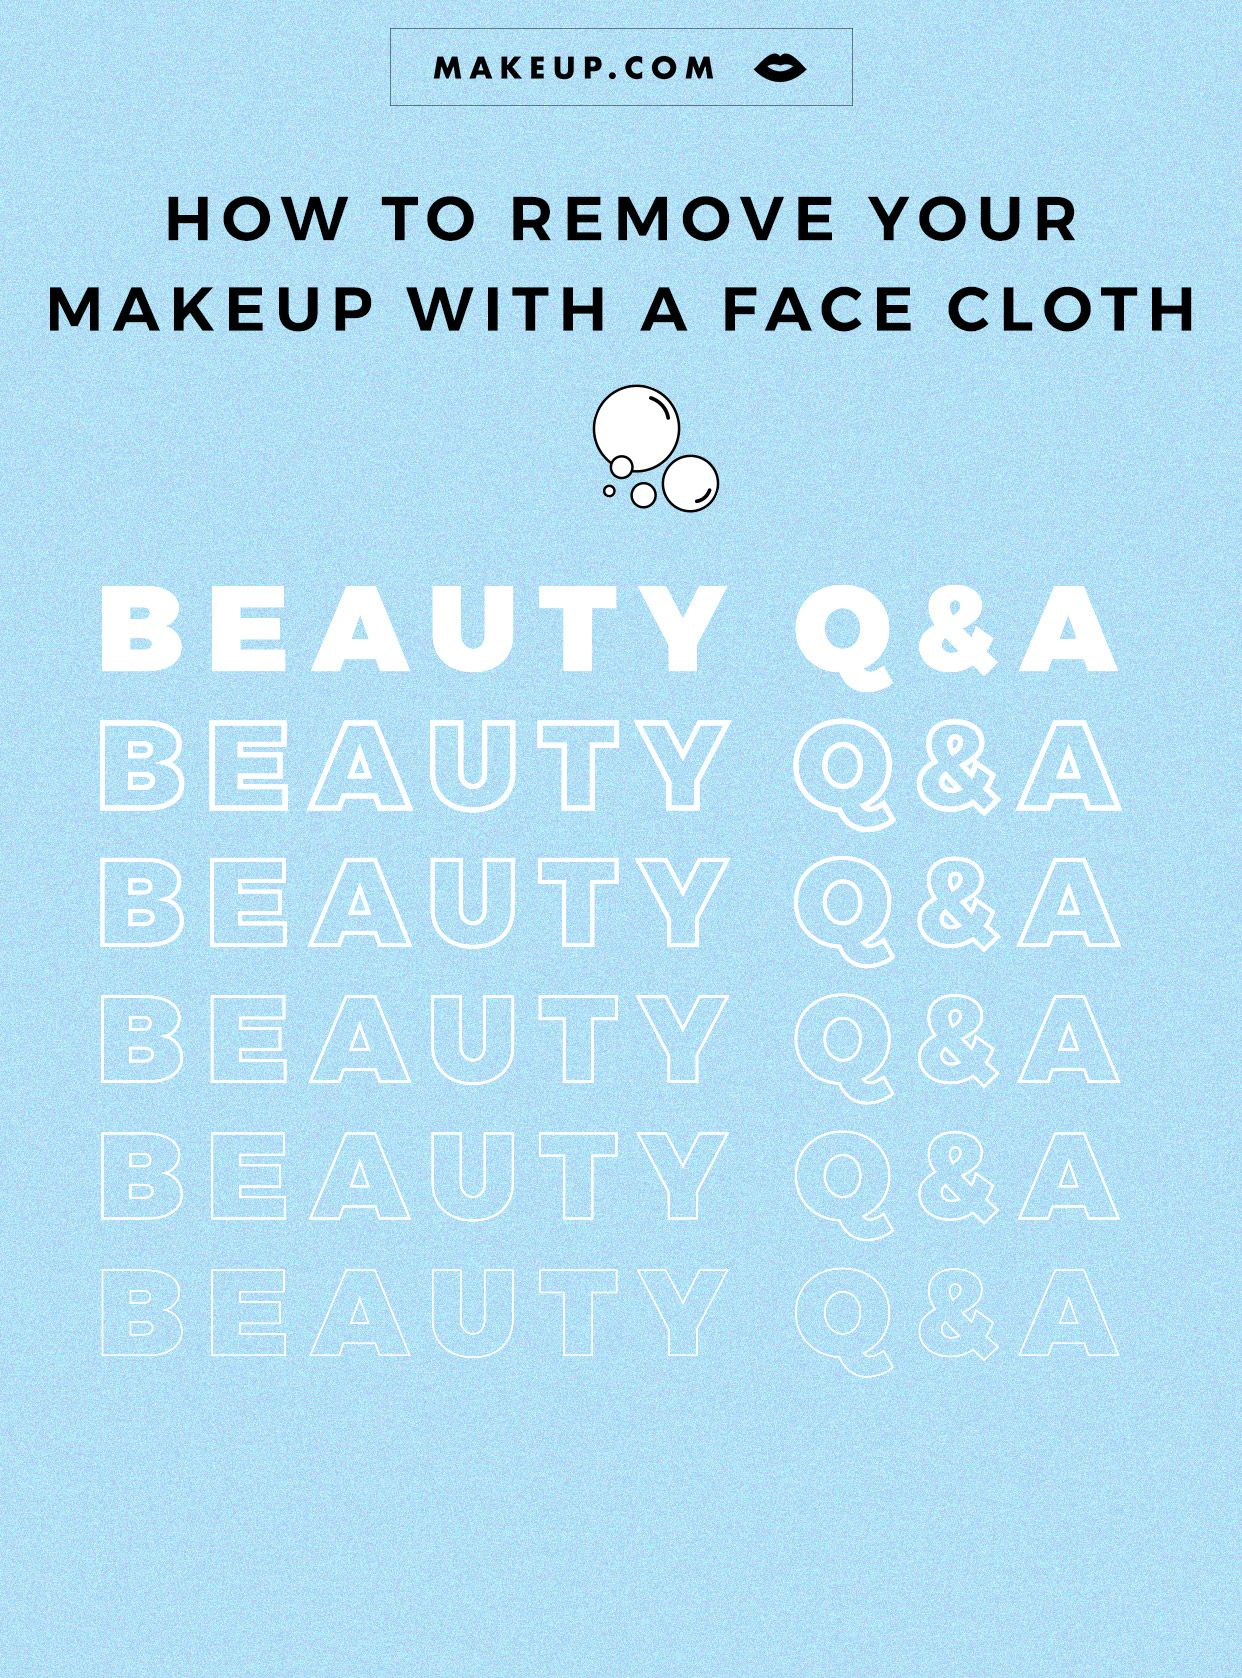 Beauty Q&A What Are the Benefits of Using a Makeup